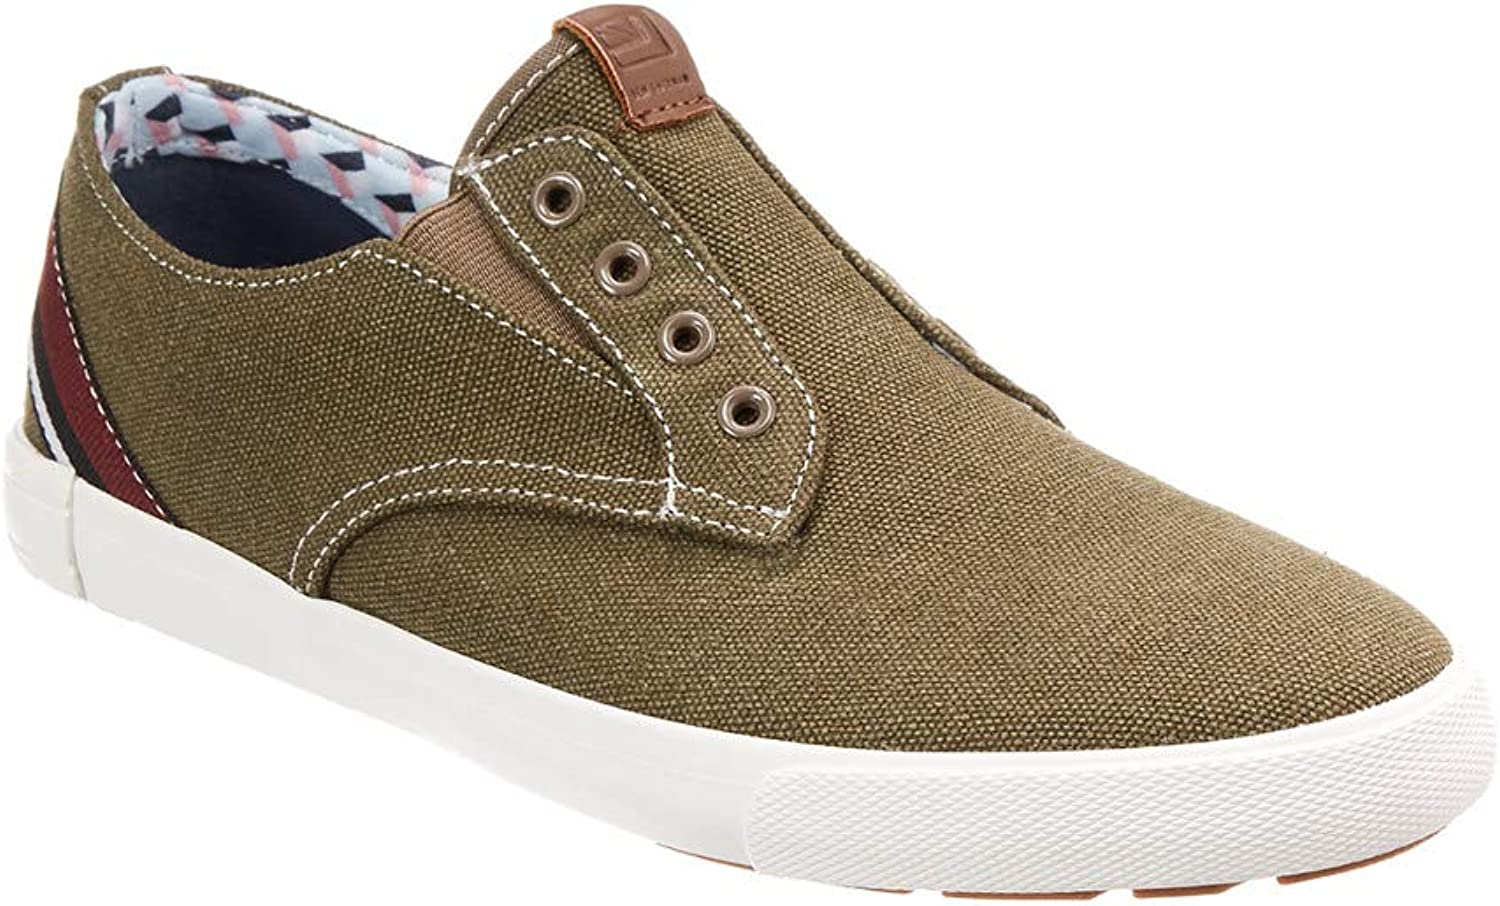 Ben Sherman Mens Percy Laceless Canvas Slip On Casual Sneakers